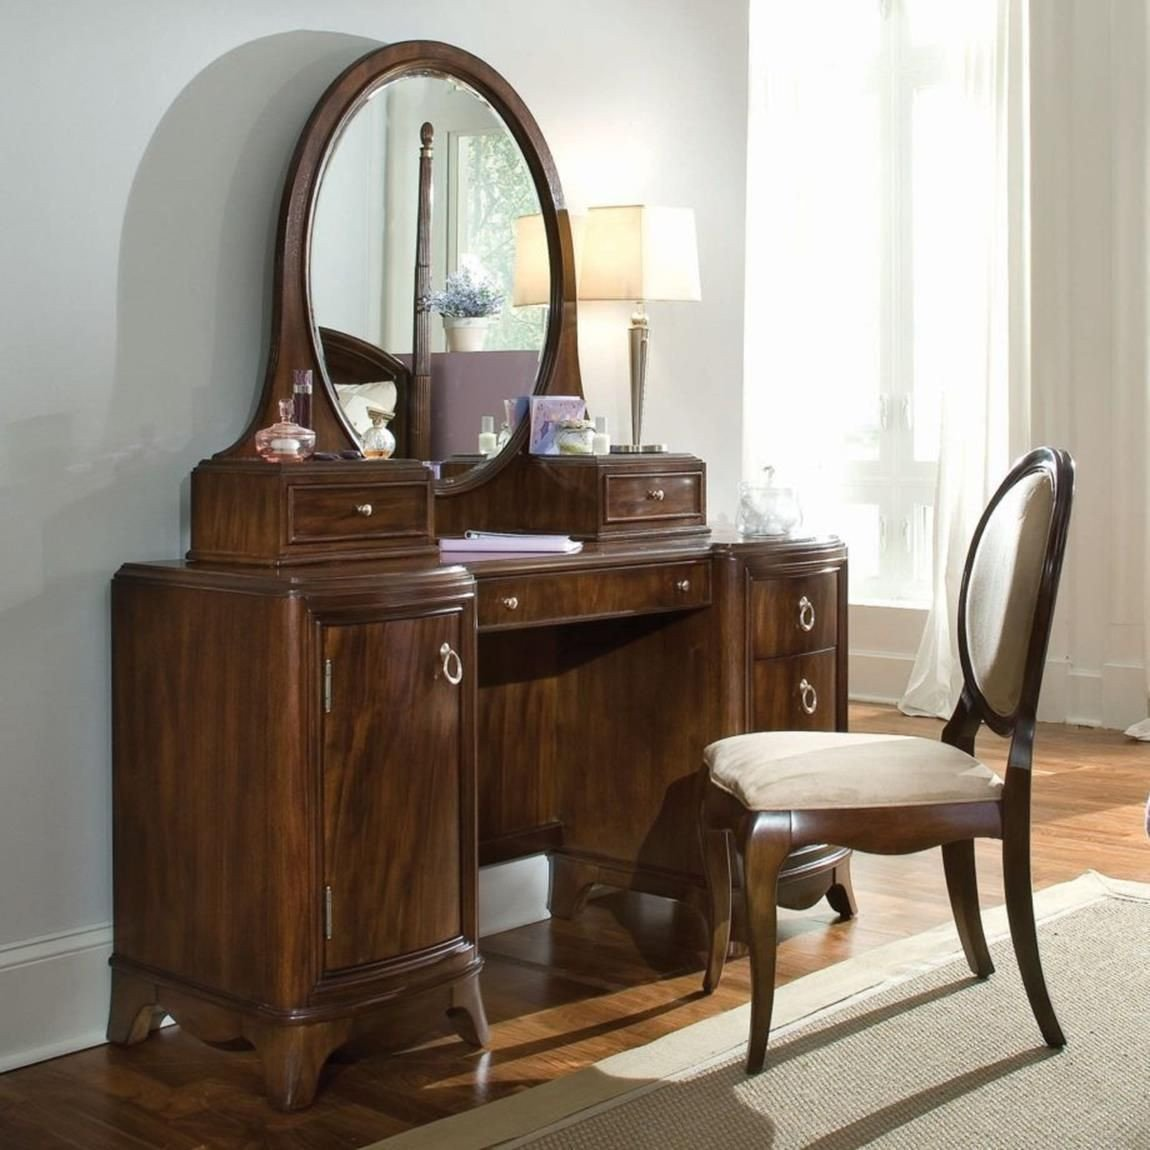 Bedroom Vanity with Drawers Best Of Bedroom Vanity Set with Lights Around Mirror 16